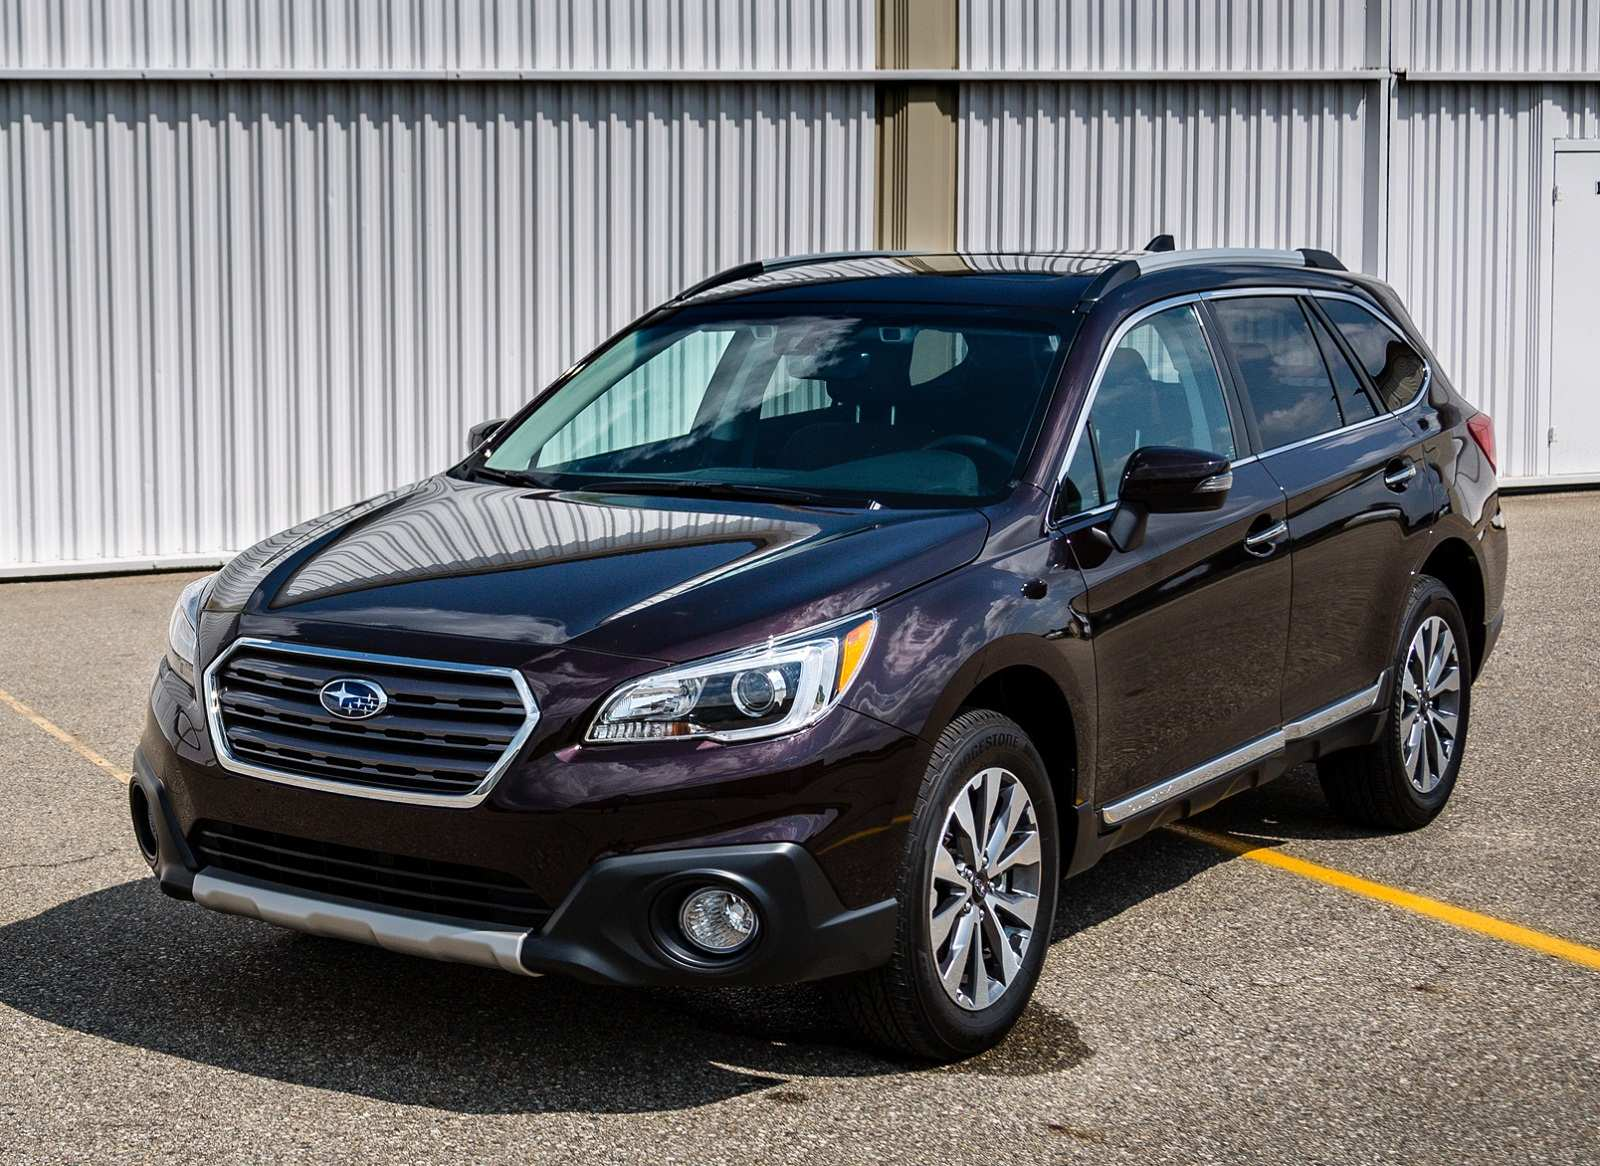 54 Gallery of Subaru Redesign 2019 Exterior and Interior for Subaru Redesign 2019